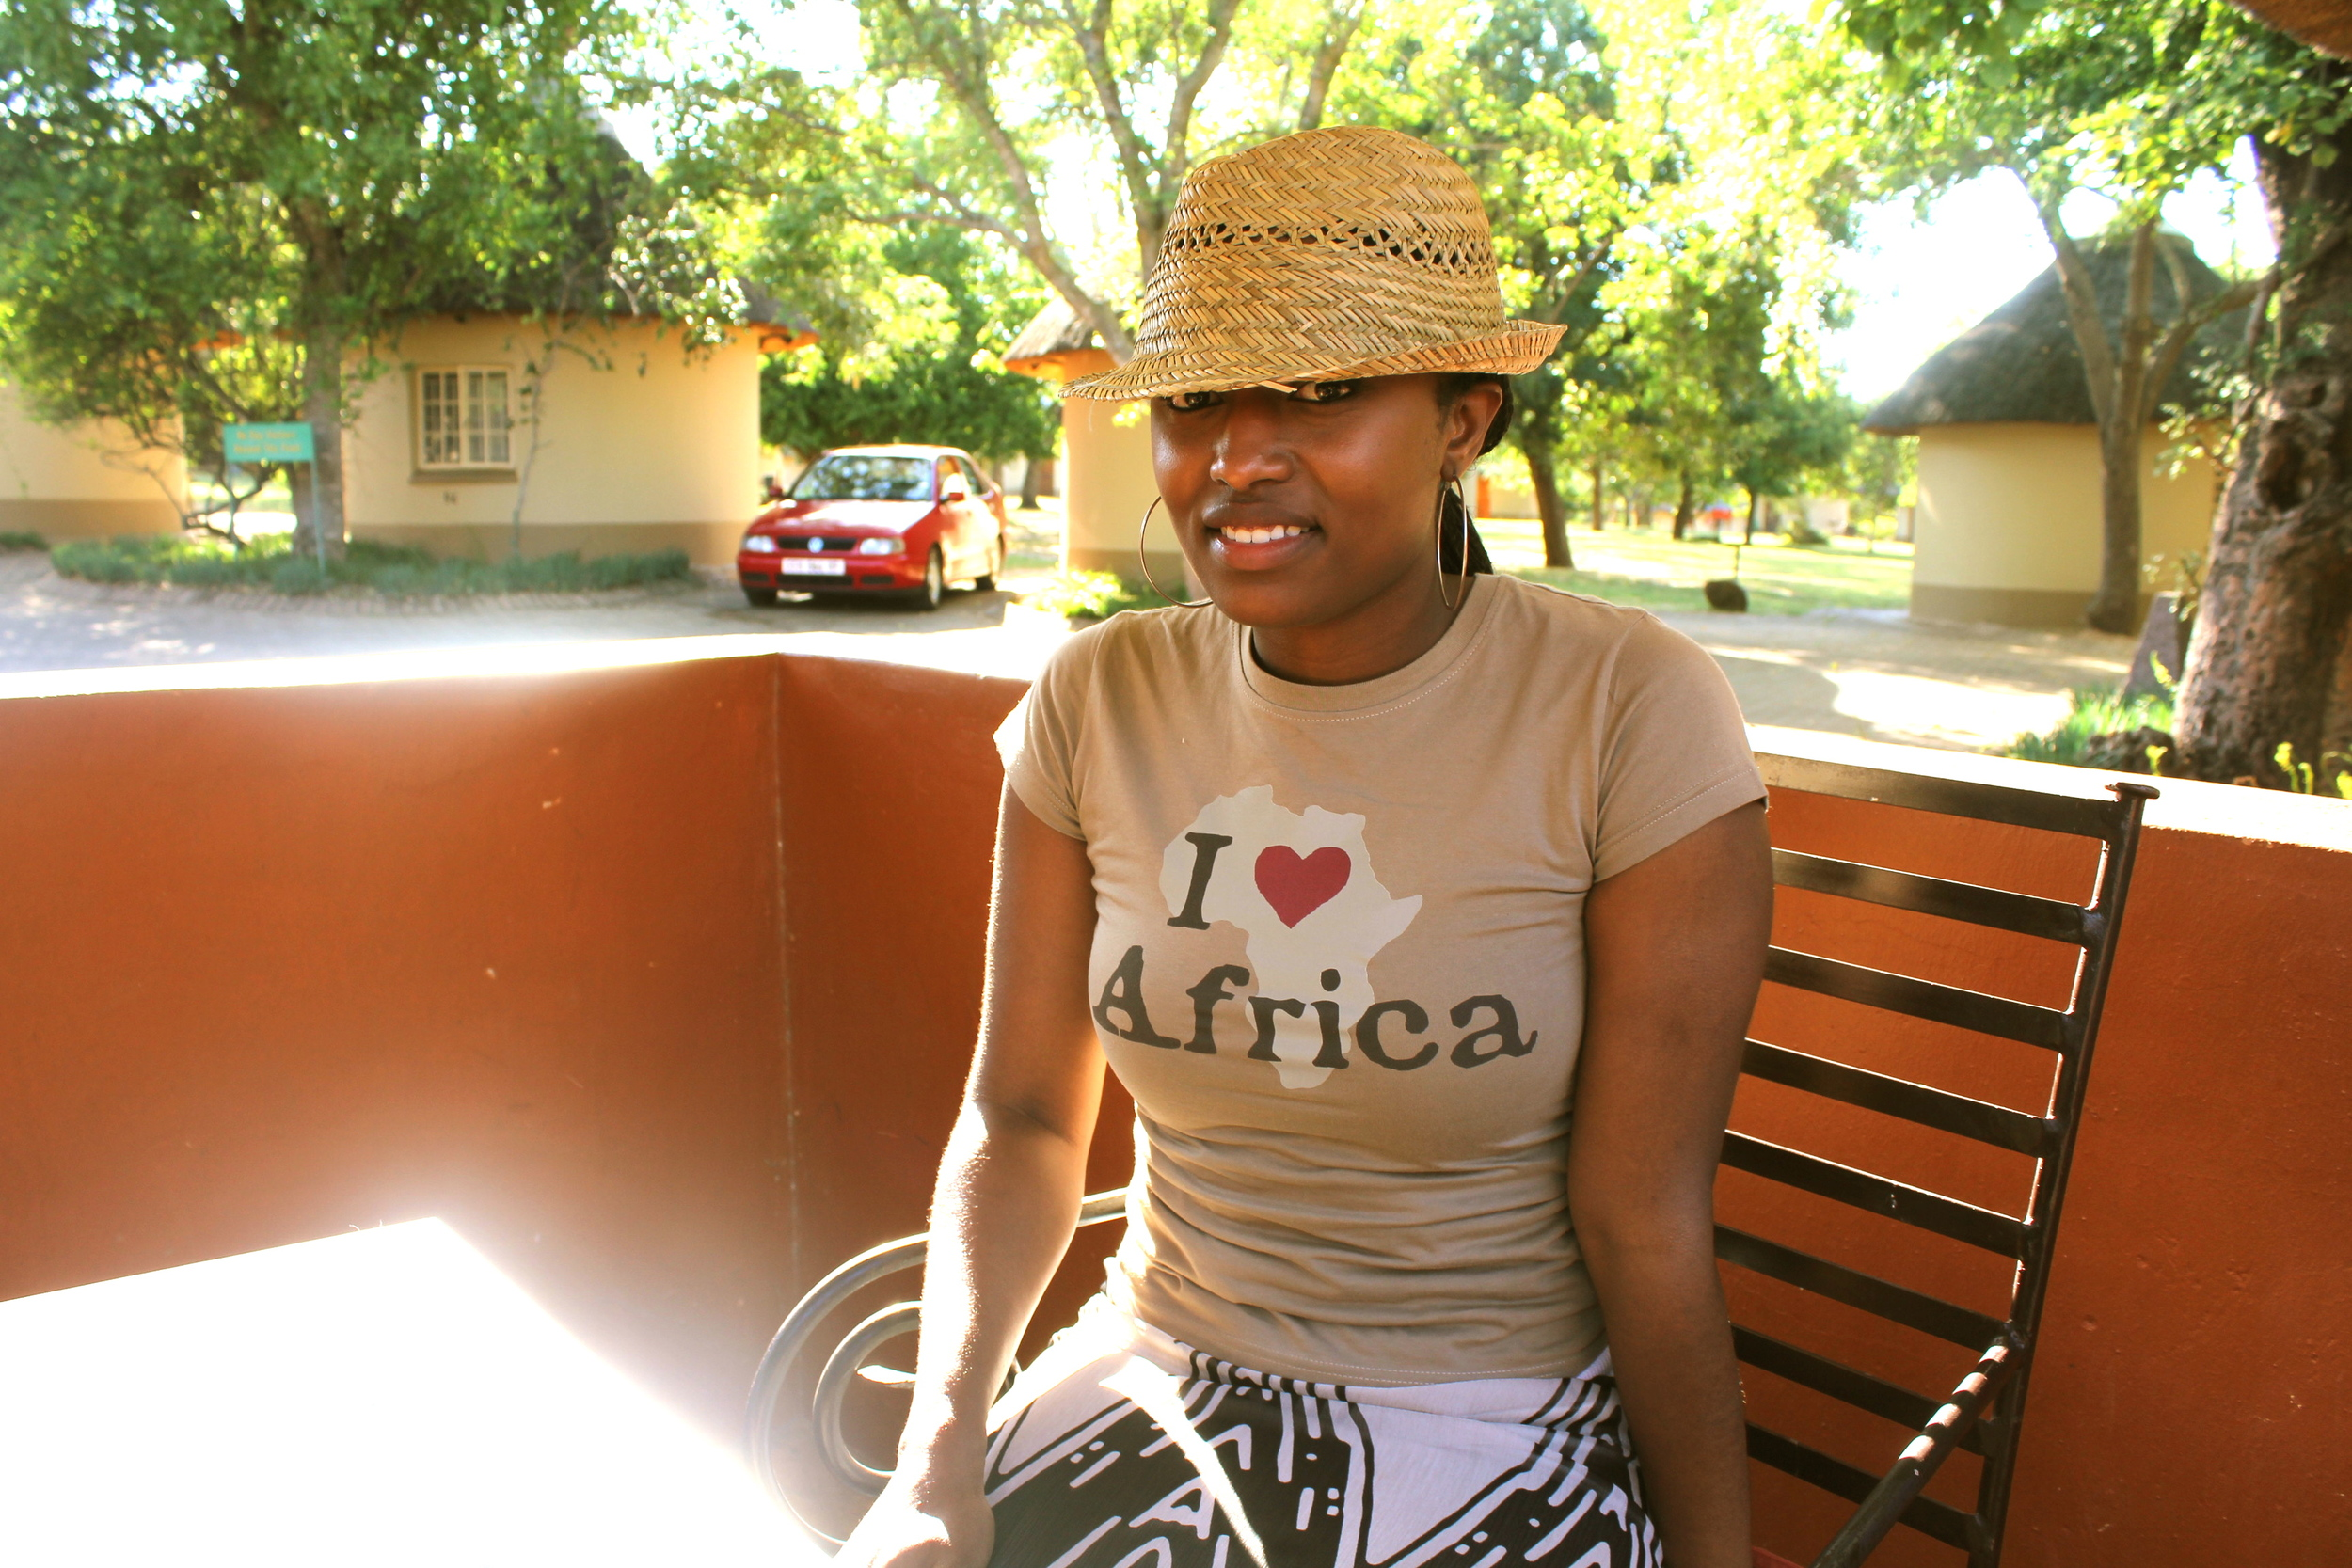 Me in South Africa